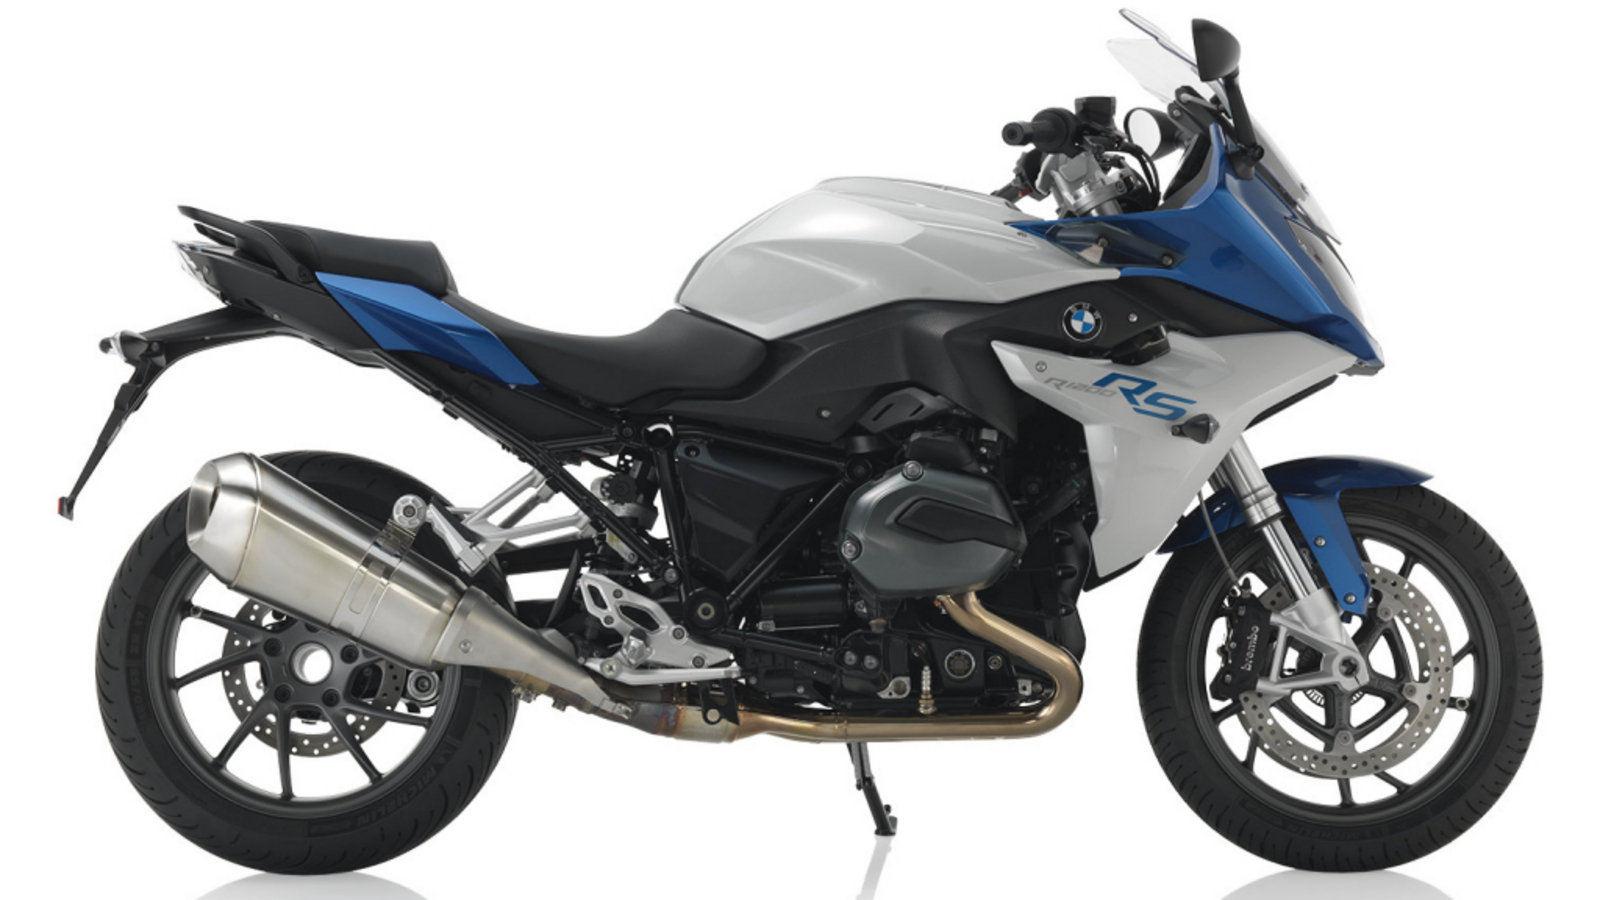 2015 2018 bmw r 1200 rs review gallery 580974 top speed. Black Bedroom Furniture Sets. Home Design Ideas